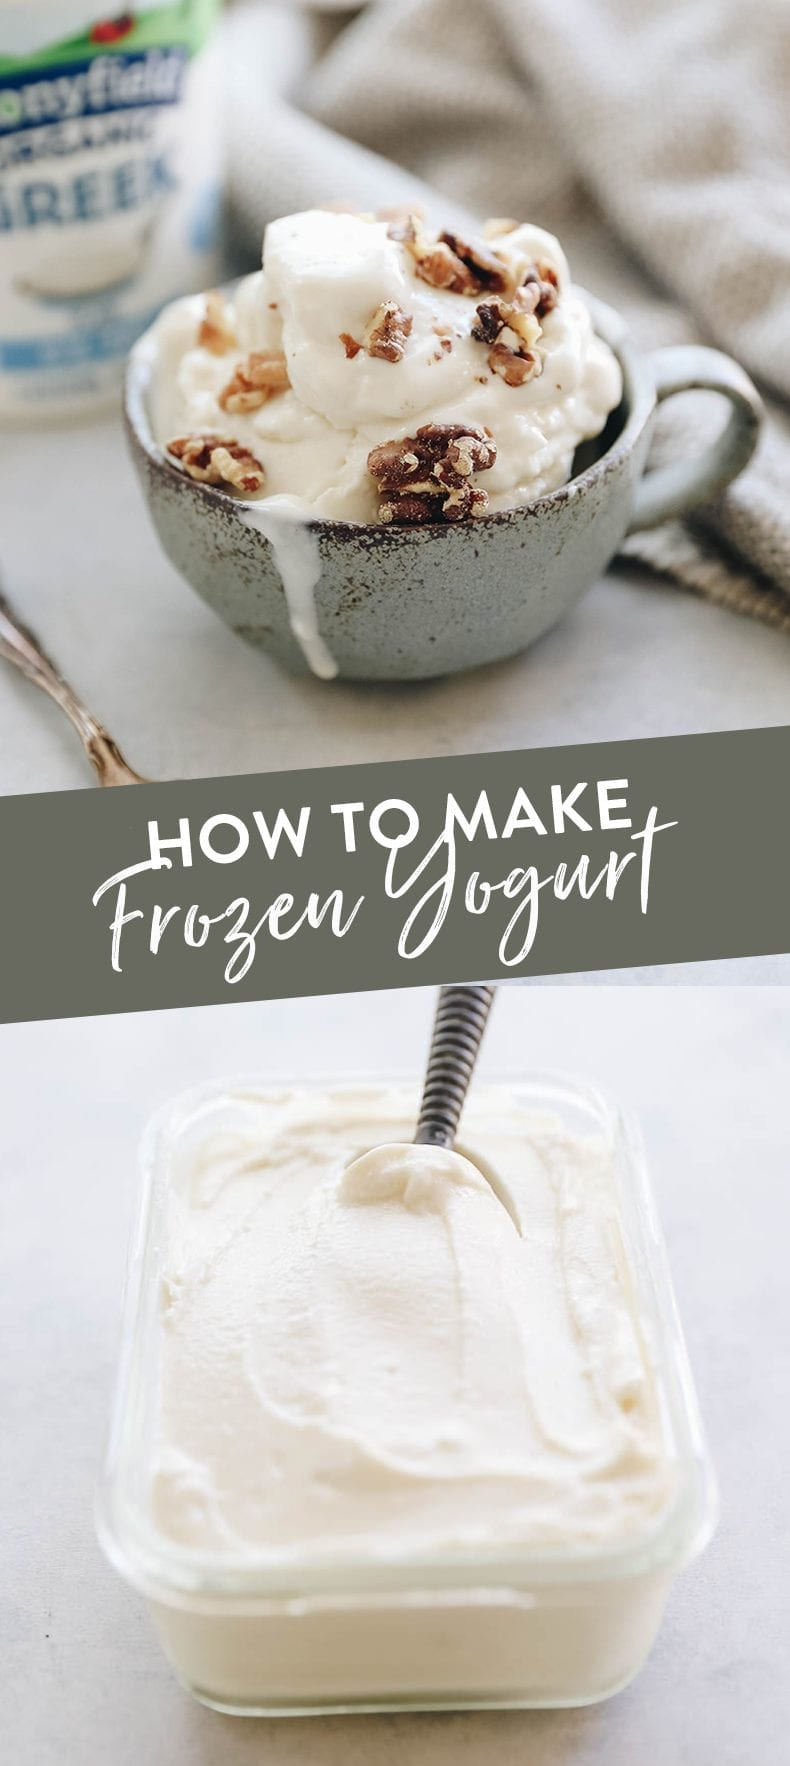 How To Make Frozen Yogurt - a step-by-step tutorial so you can make frozen yogurt at home with just 3 ingredients! #frozenyogurt #healthydessert